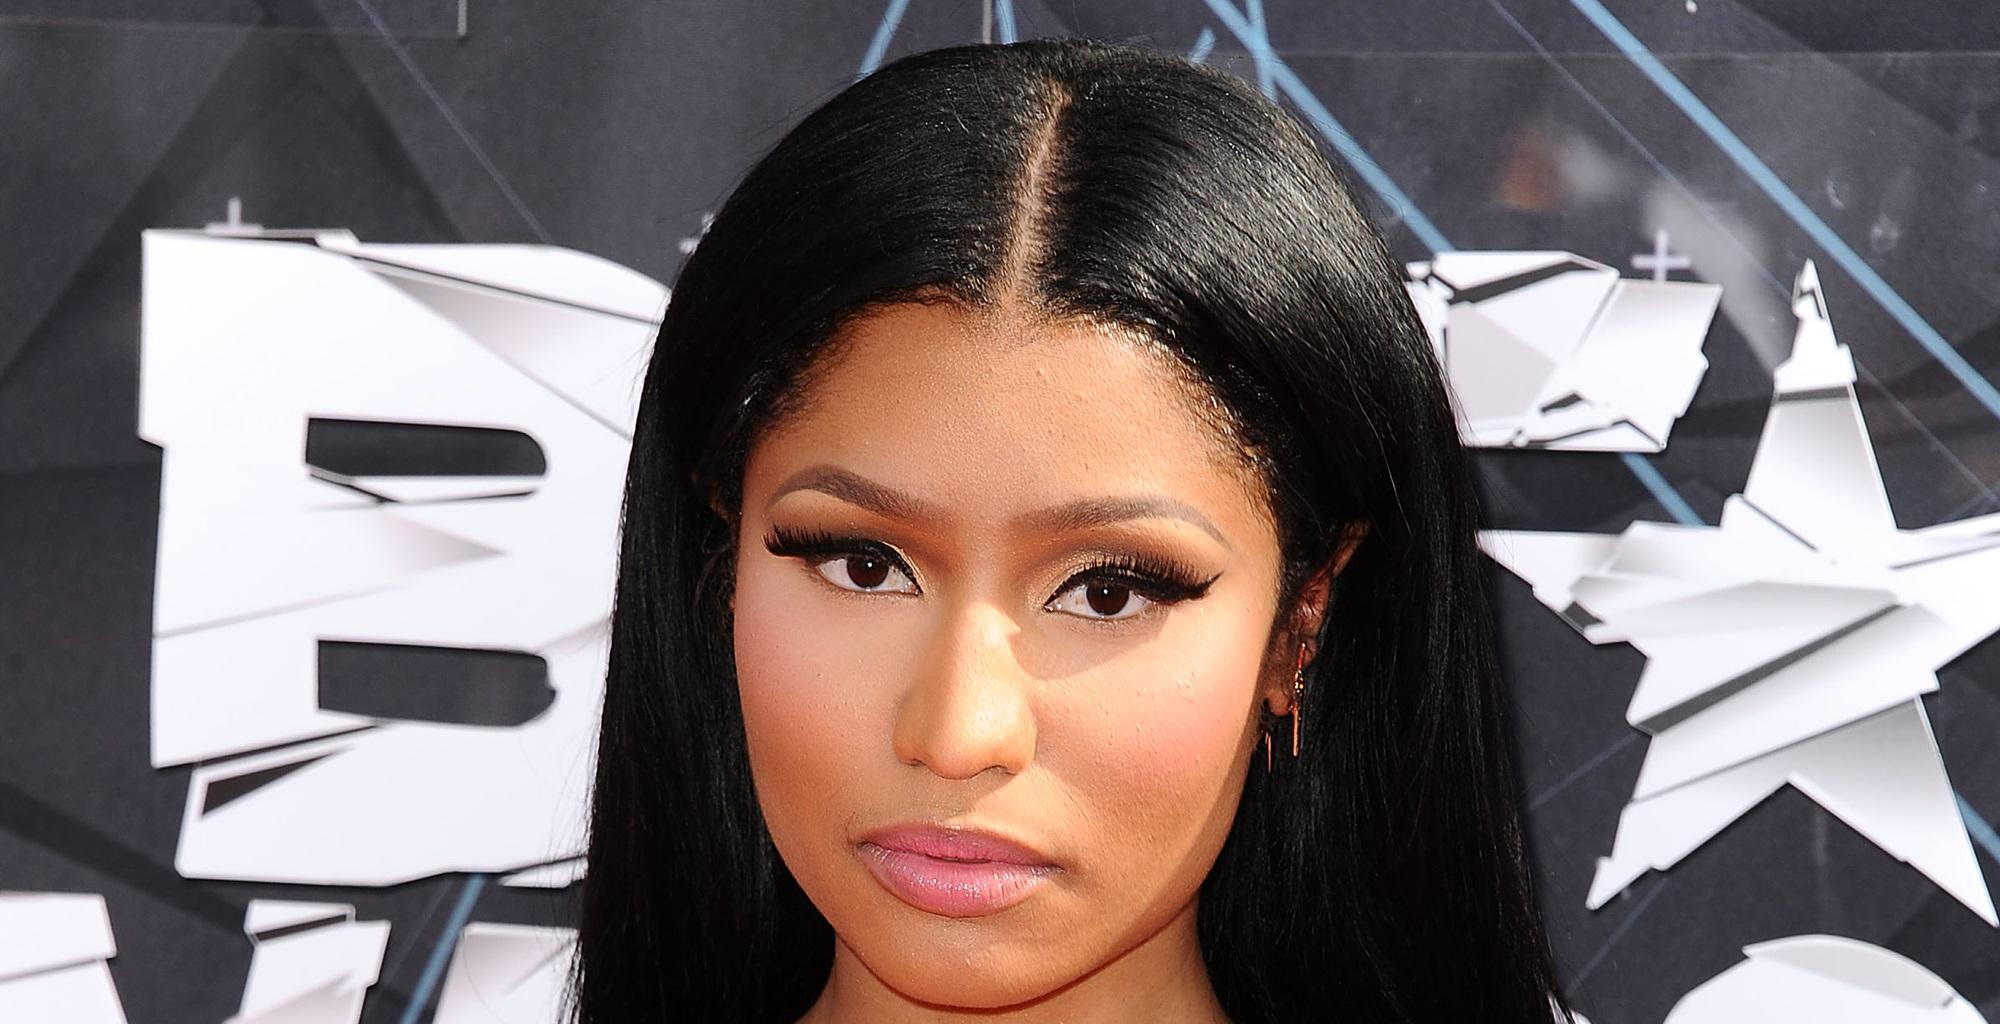 Nicki Minaj Loses Fight To Keep This Video Private -- Was She Right?